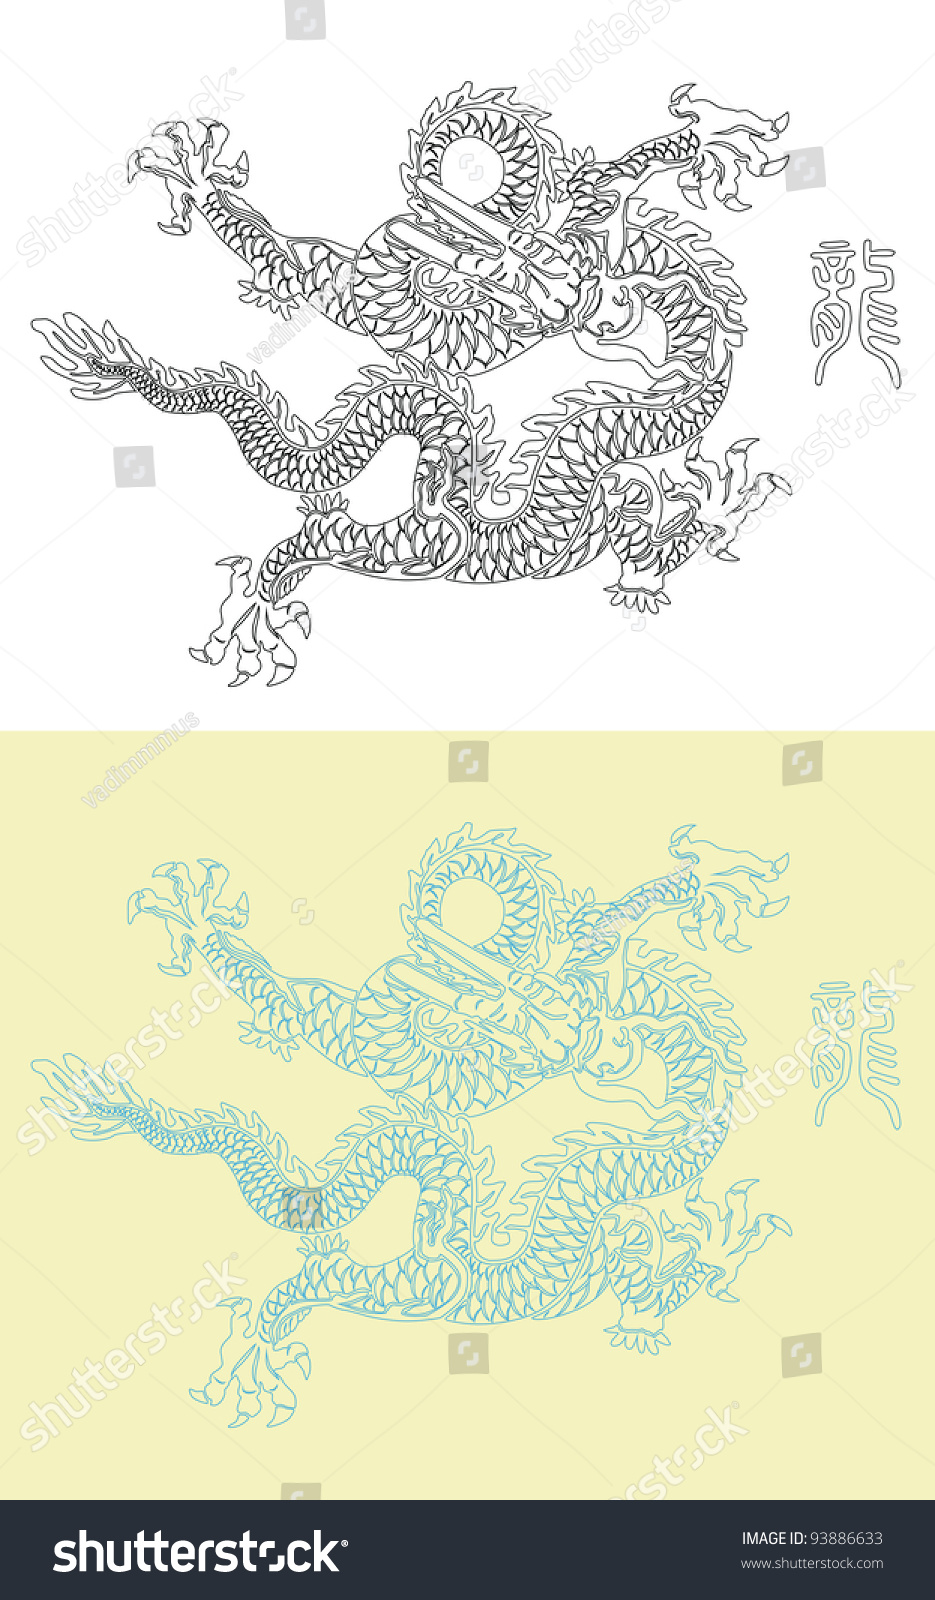 chinese dragon outline vector illustration eps8